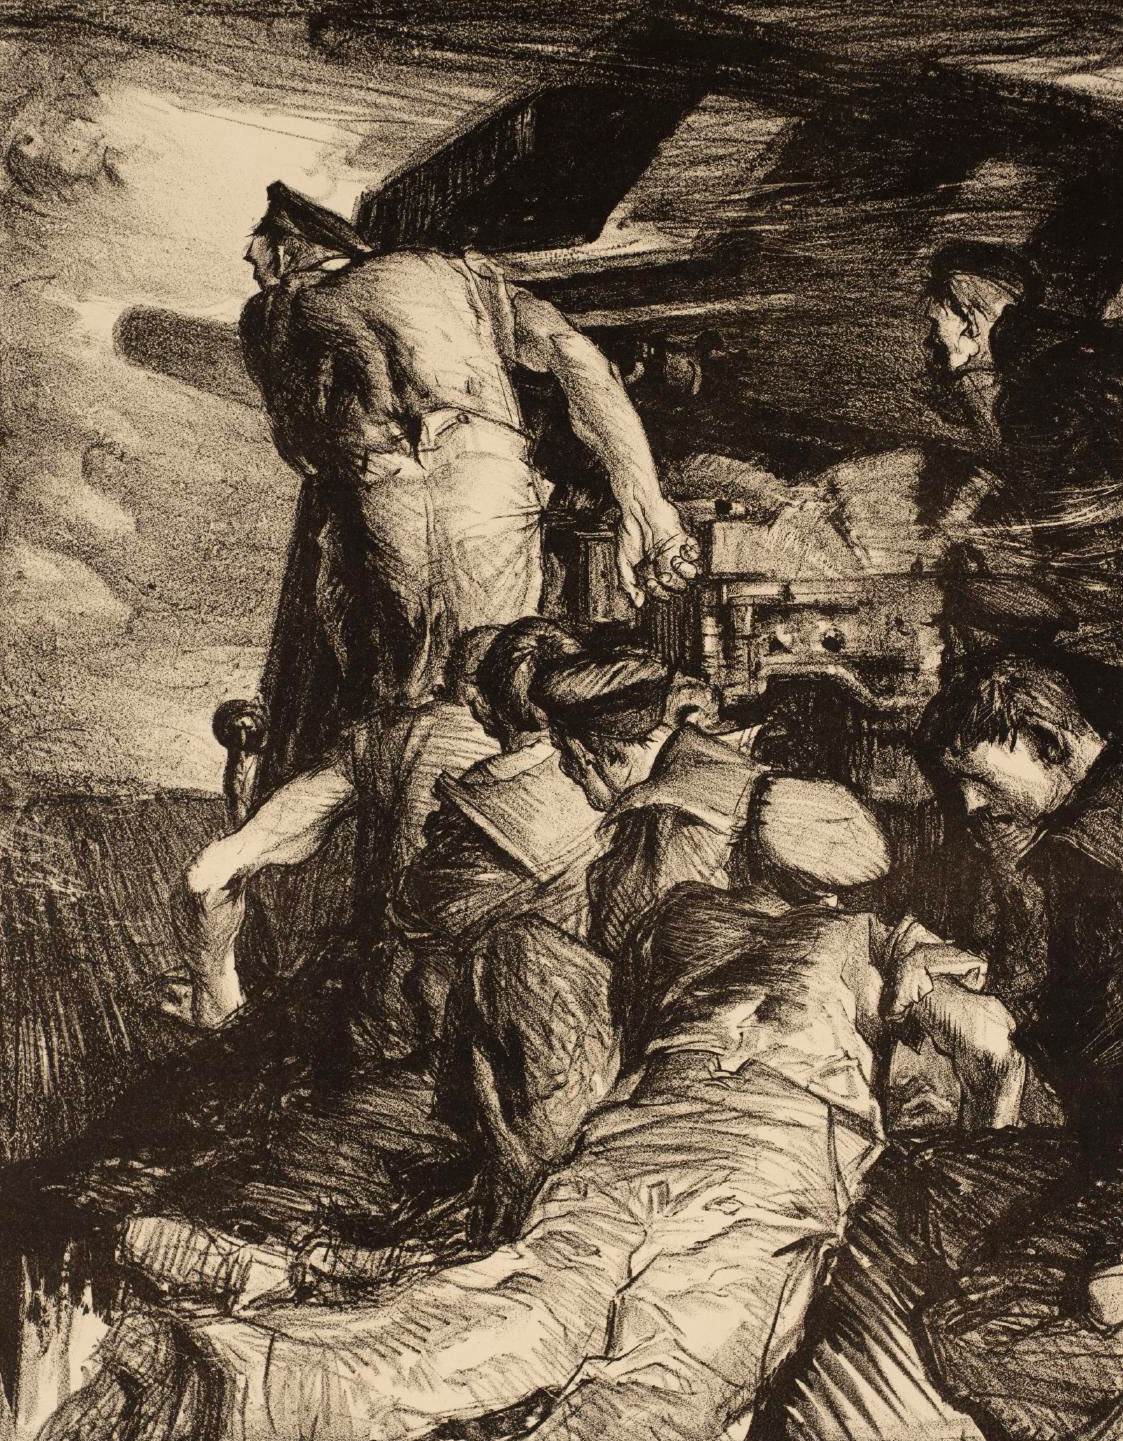 Making Sailors: The Gun c.1917 by Sir Frank Brangwyn 1867-1956